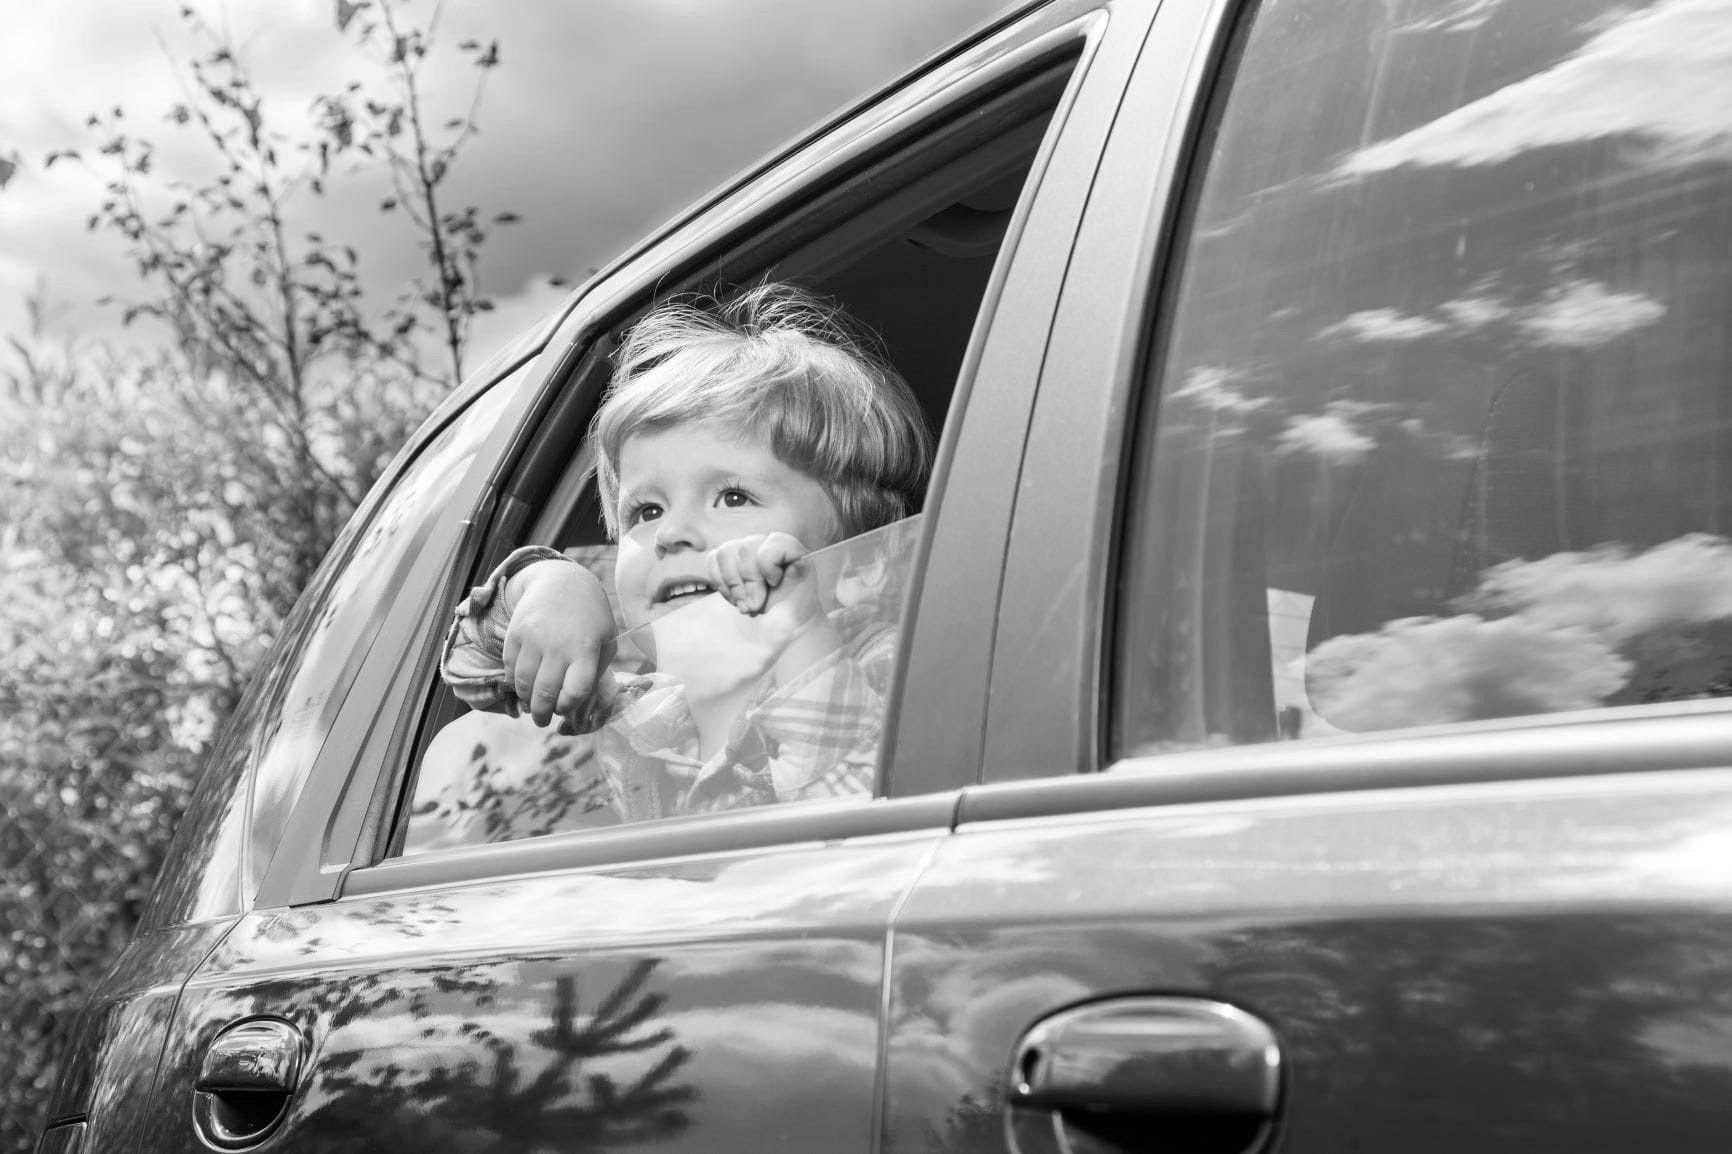 child sitting in car and looking out window